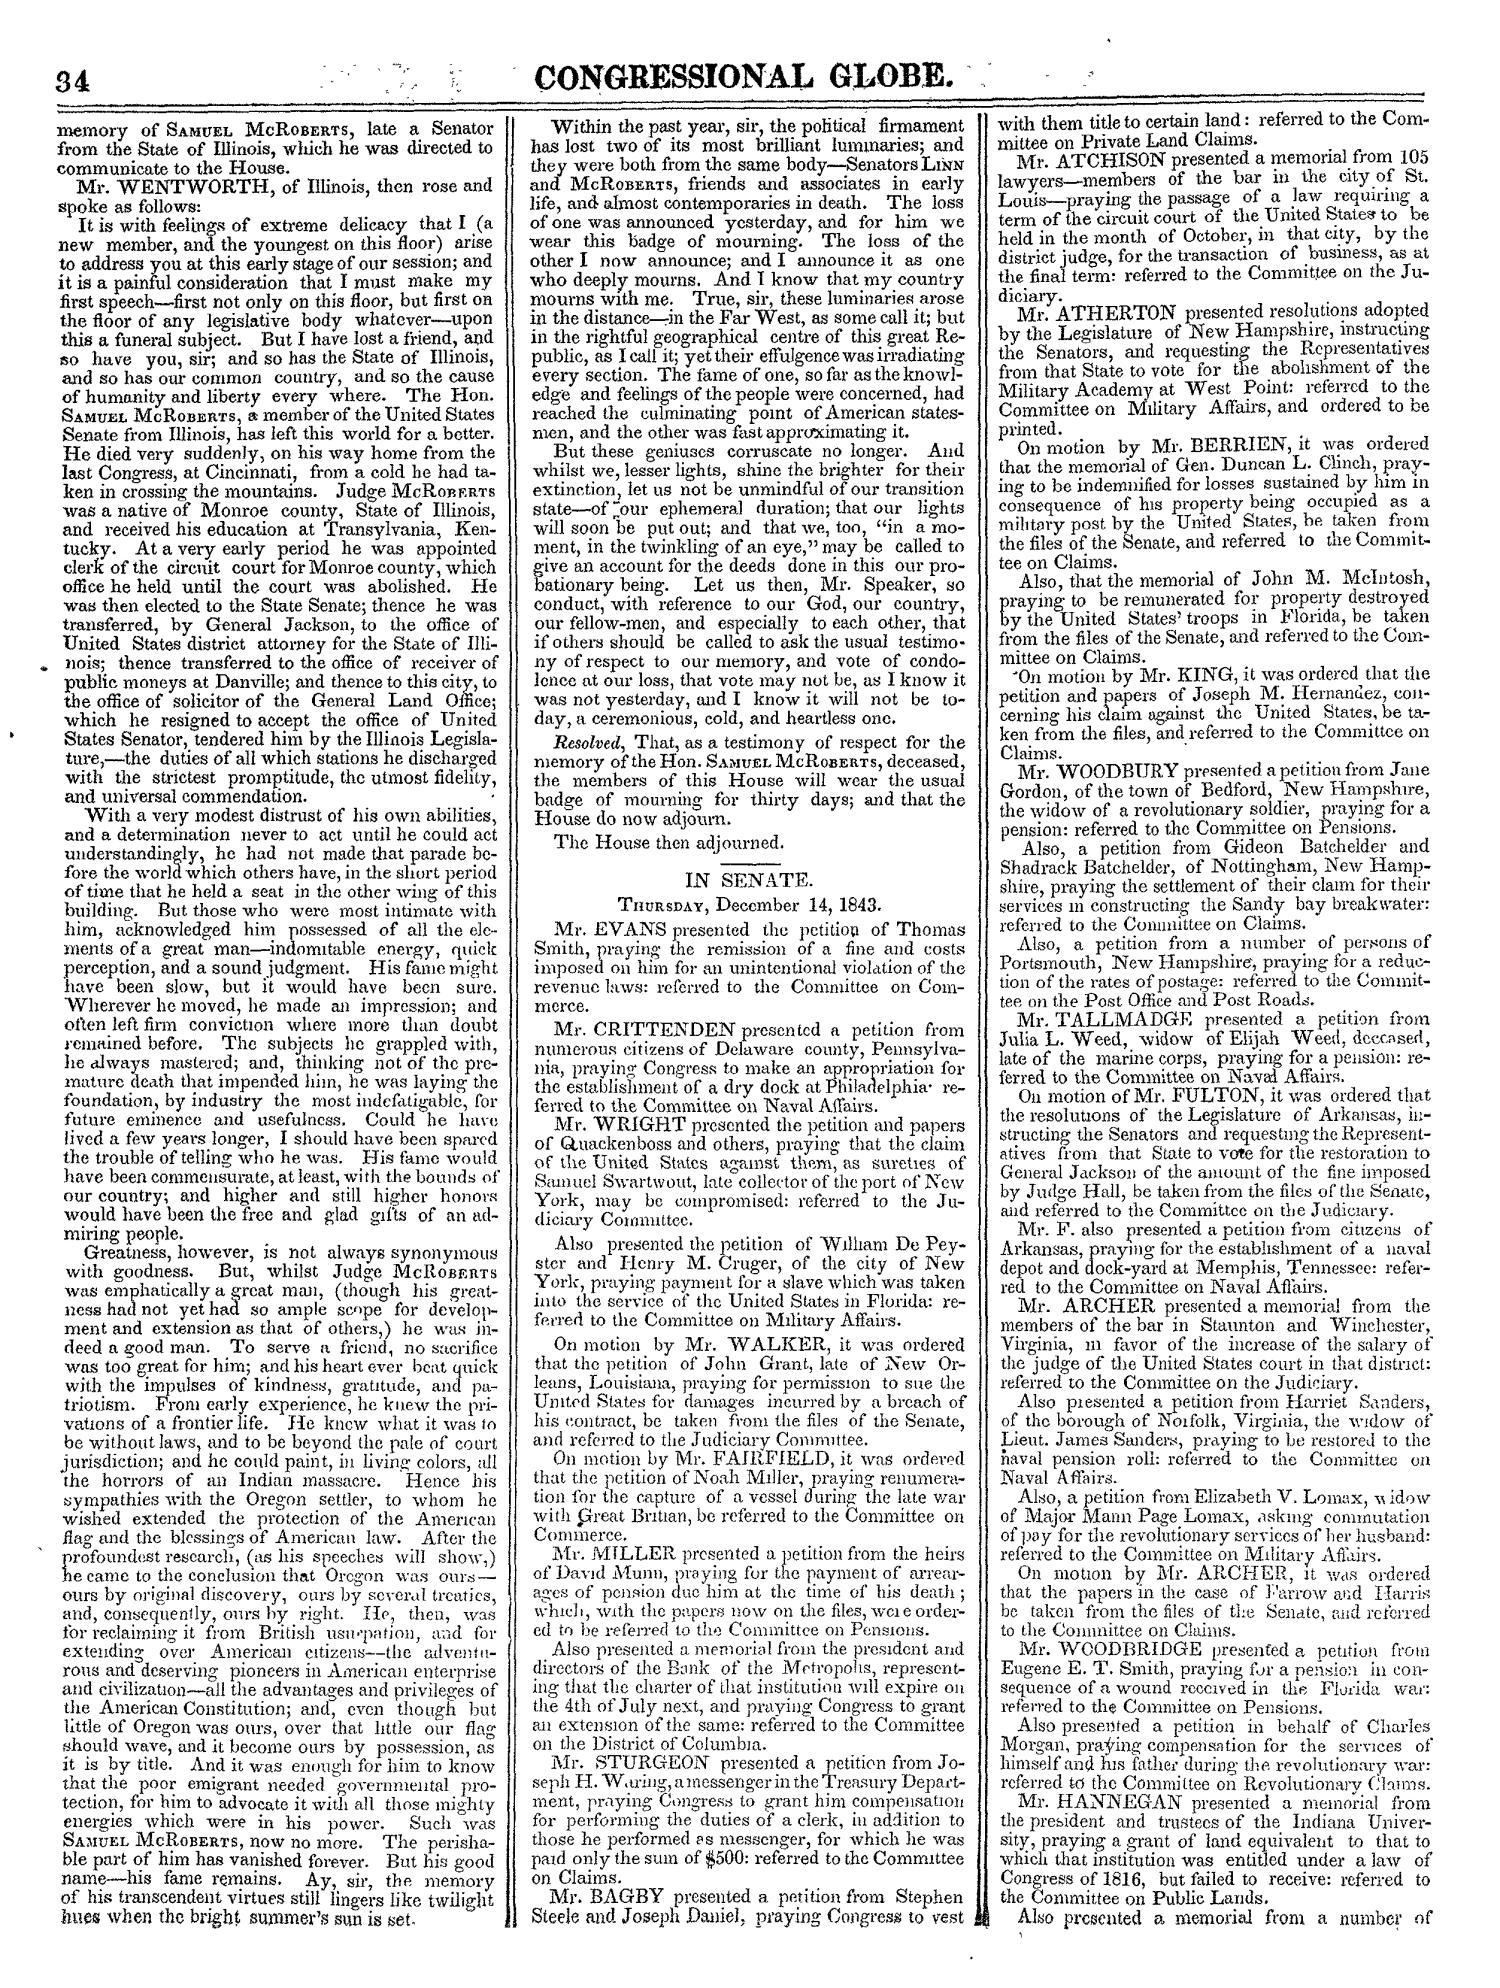 The Congressional Globe, Volume 13, Part 1: Twenty-Eighth Congress, First Session                                                                                                      34